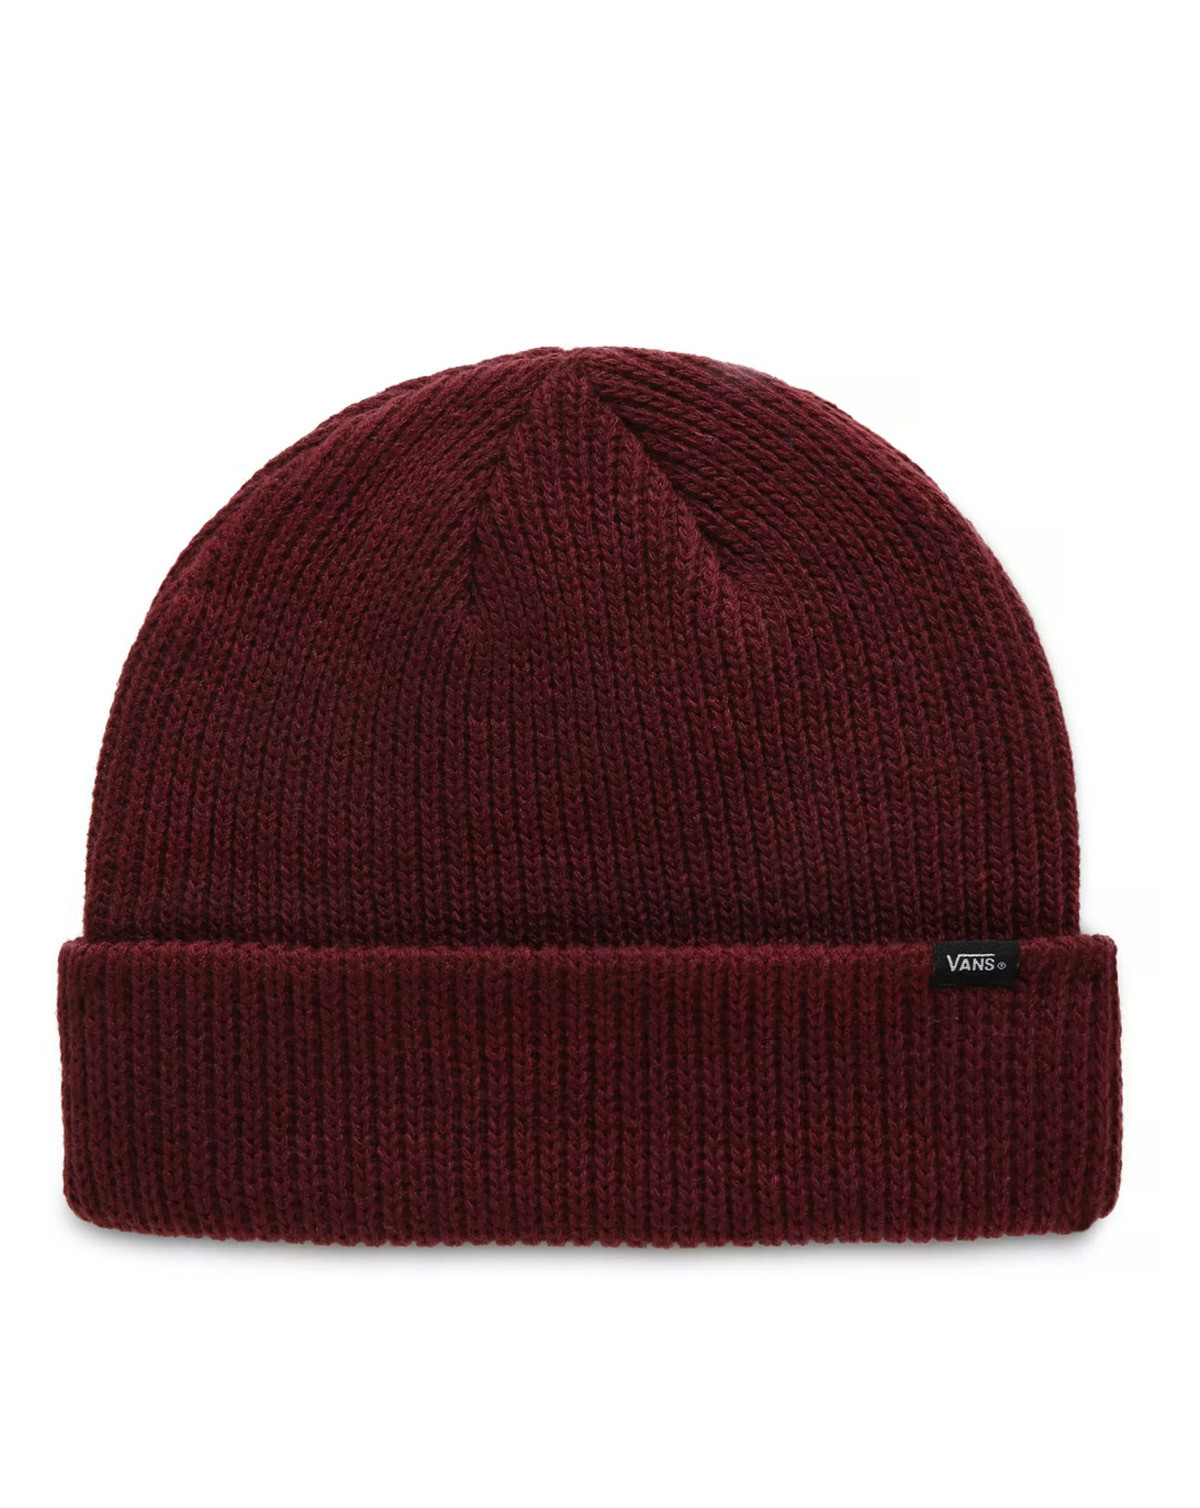 Image of   VANS Core Basics Beanie (Vinrød, One Size)